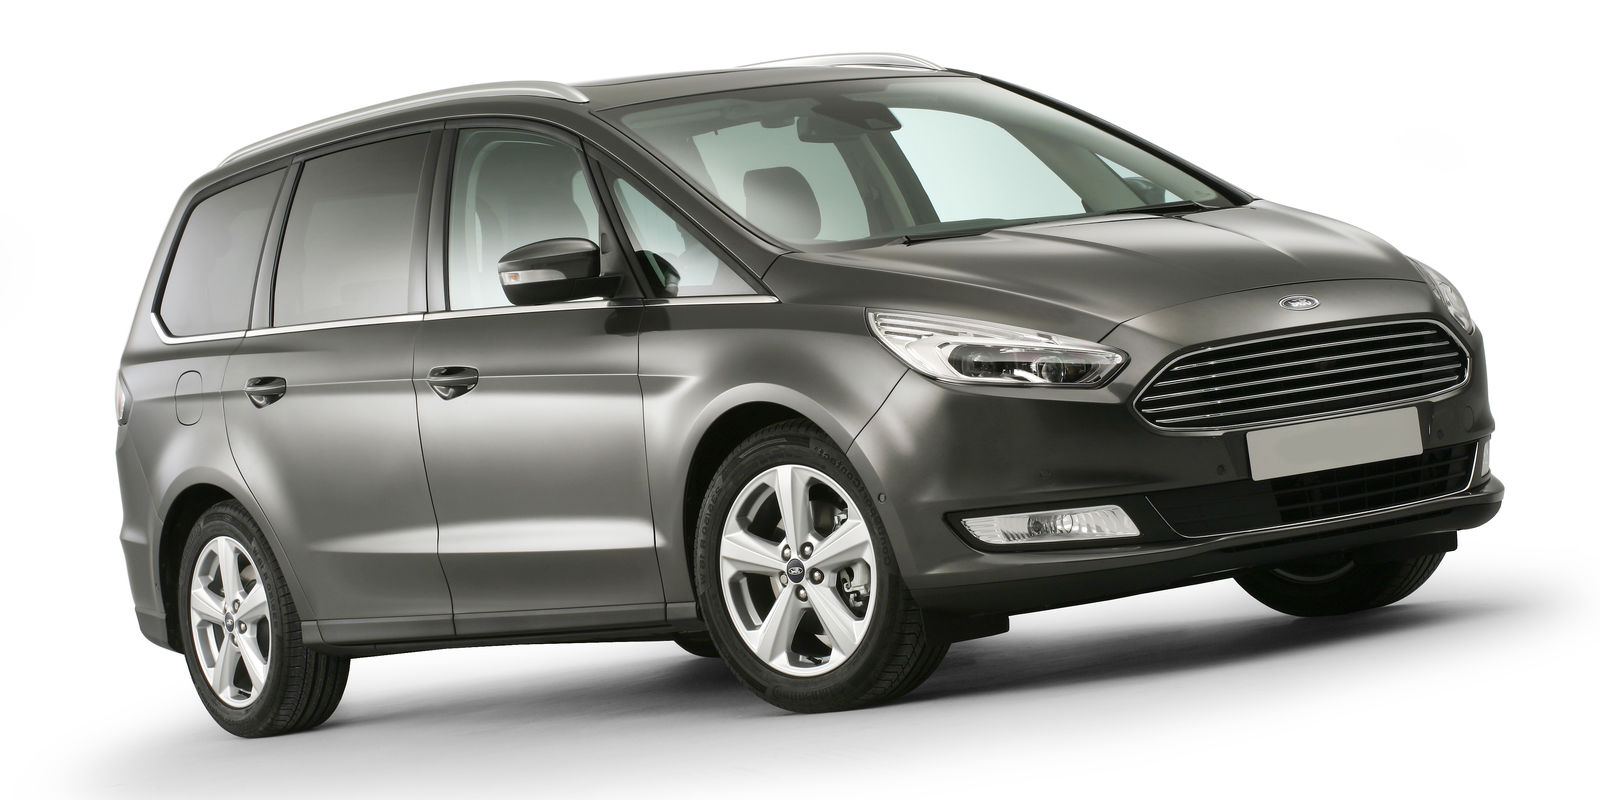 ford galaxy review seven seater mpv has lots of. Black Bedroom Furniture Sets. Home Design Ideas